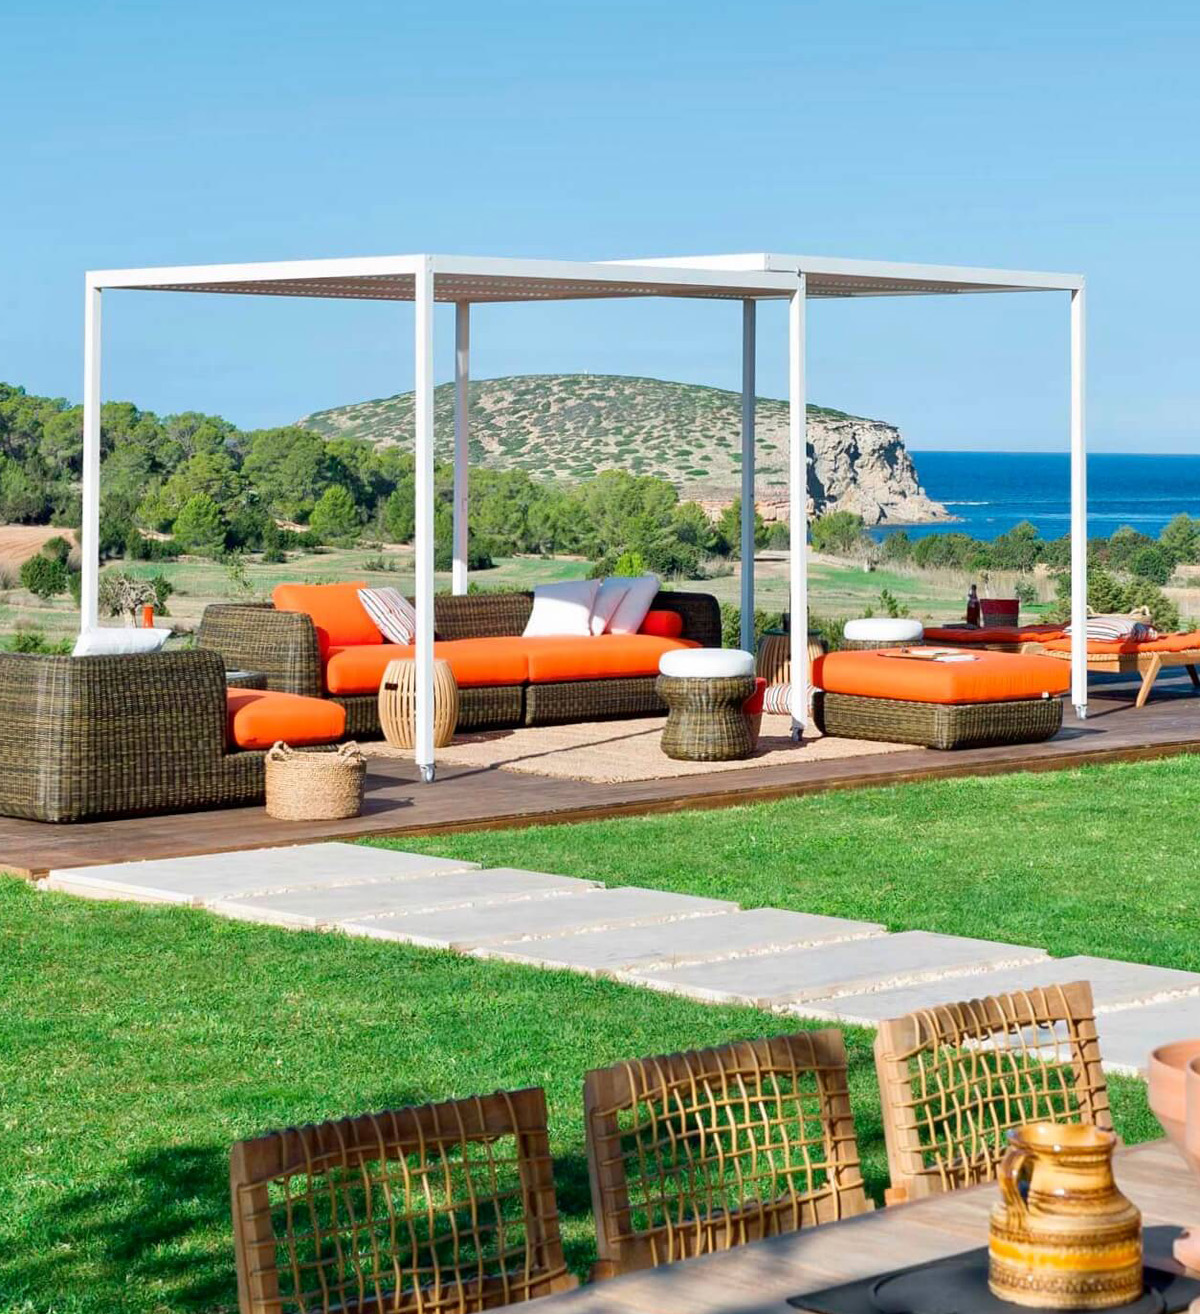 Laid Back Social Space - Modern Garden Furniture for Summer